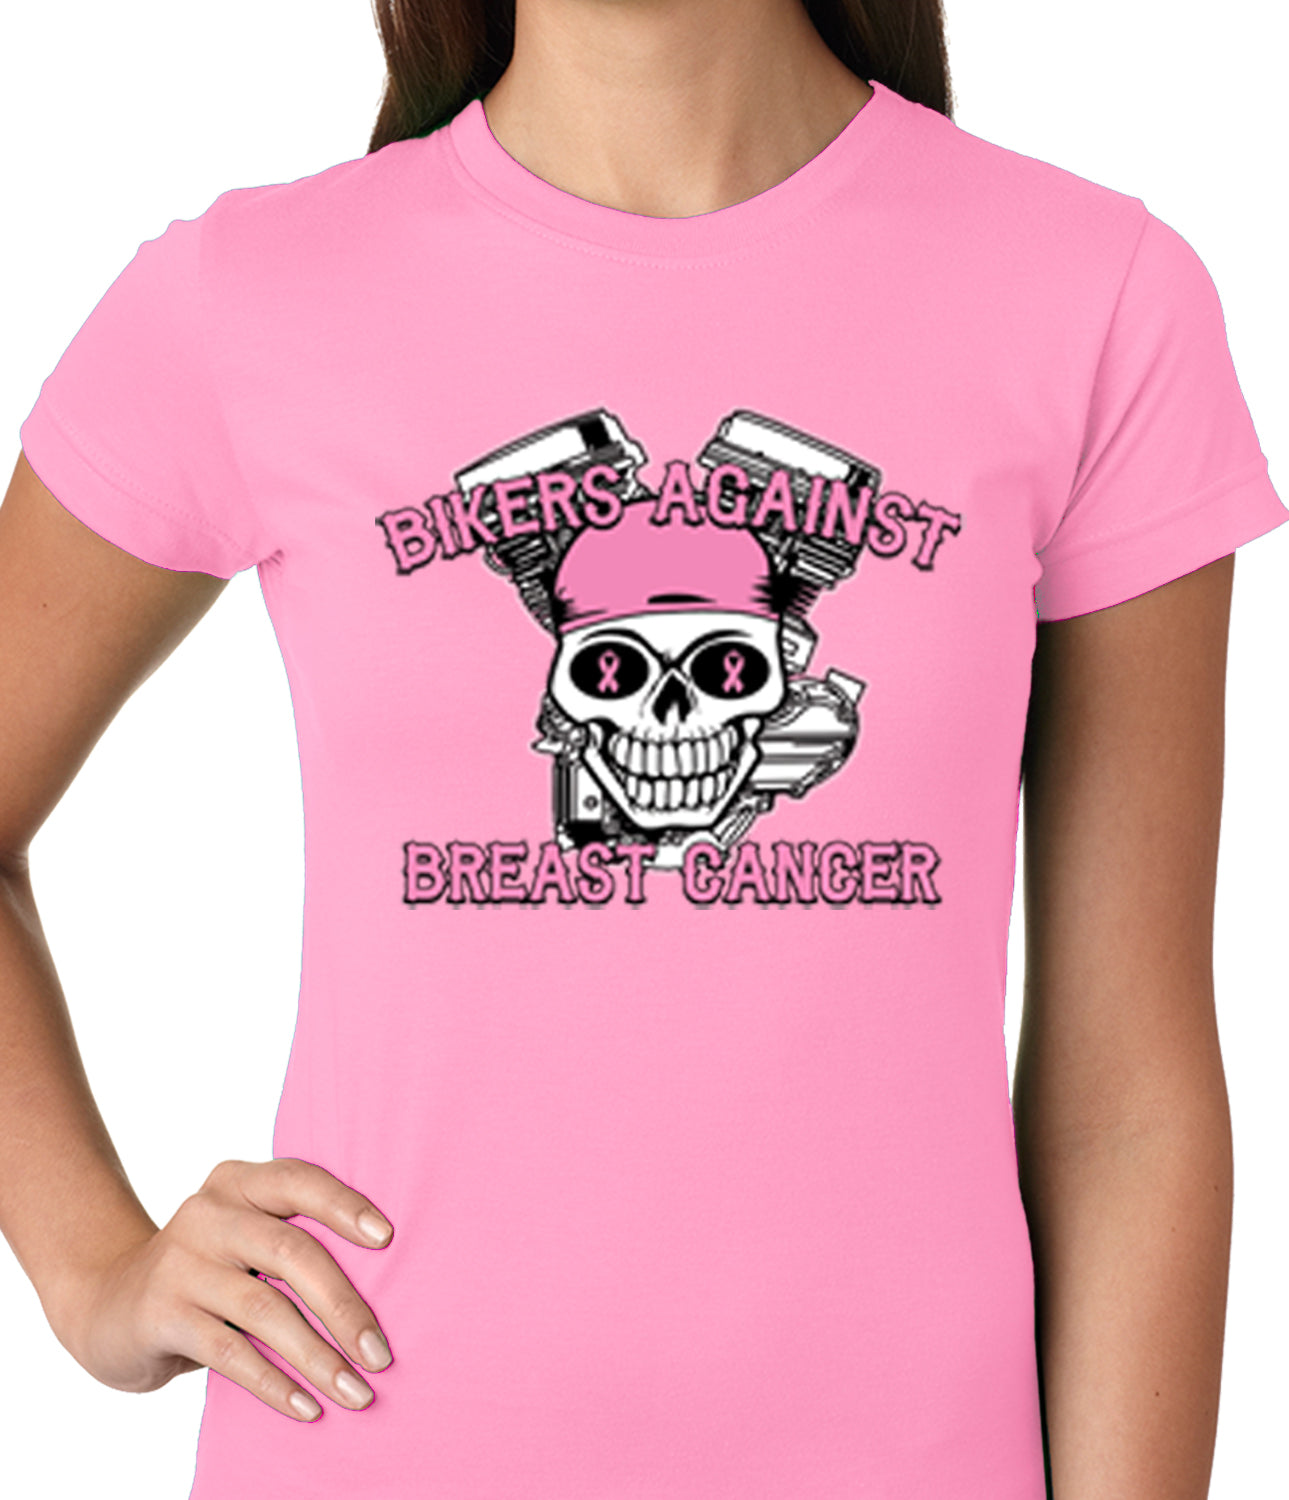 Bikers Against Breast Cancer Ladies T-shirt